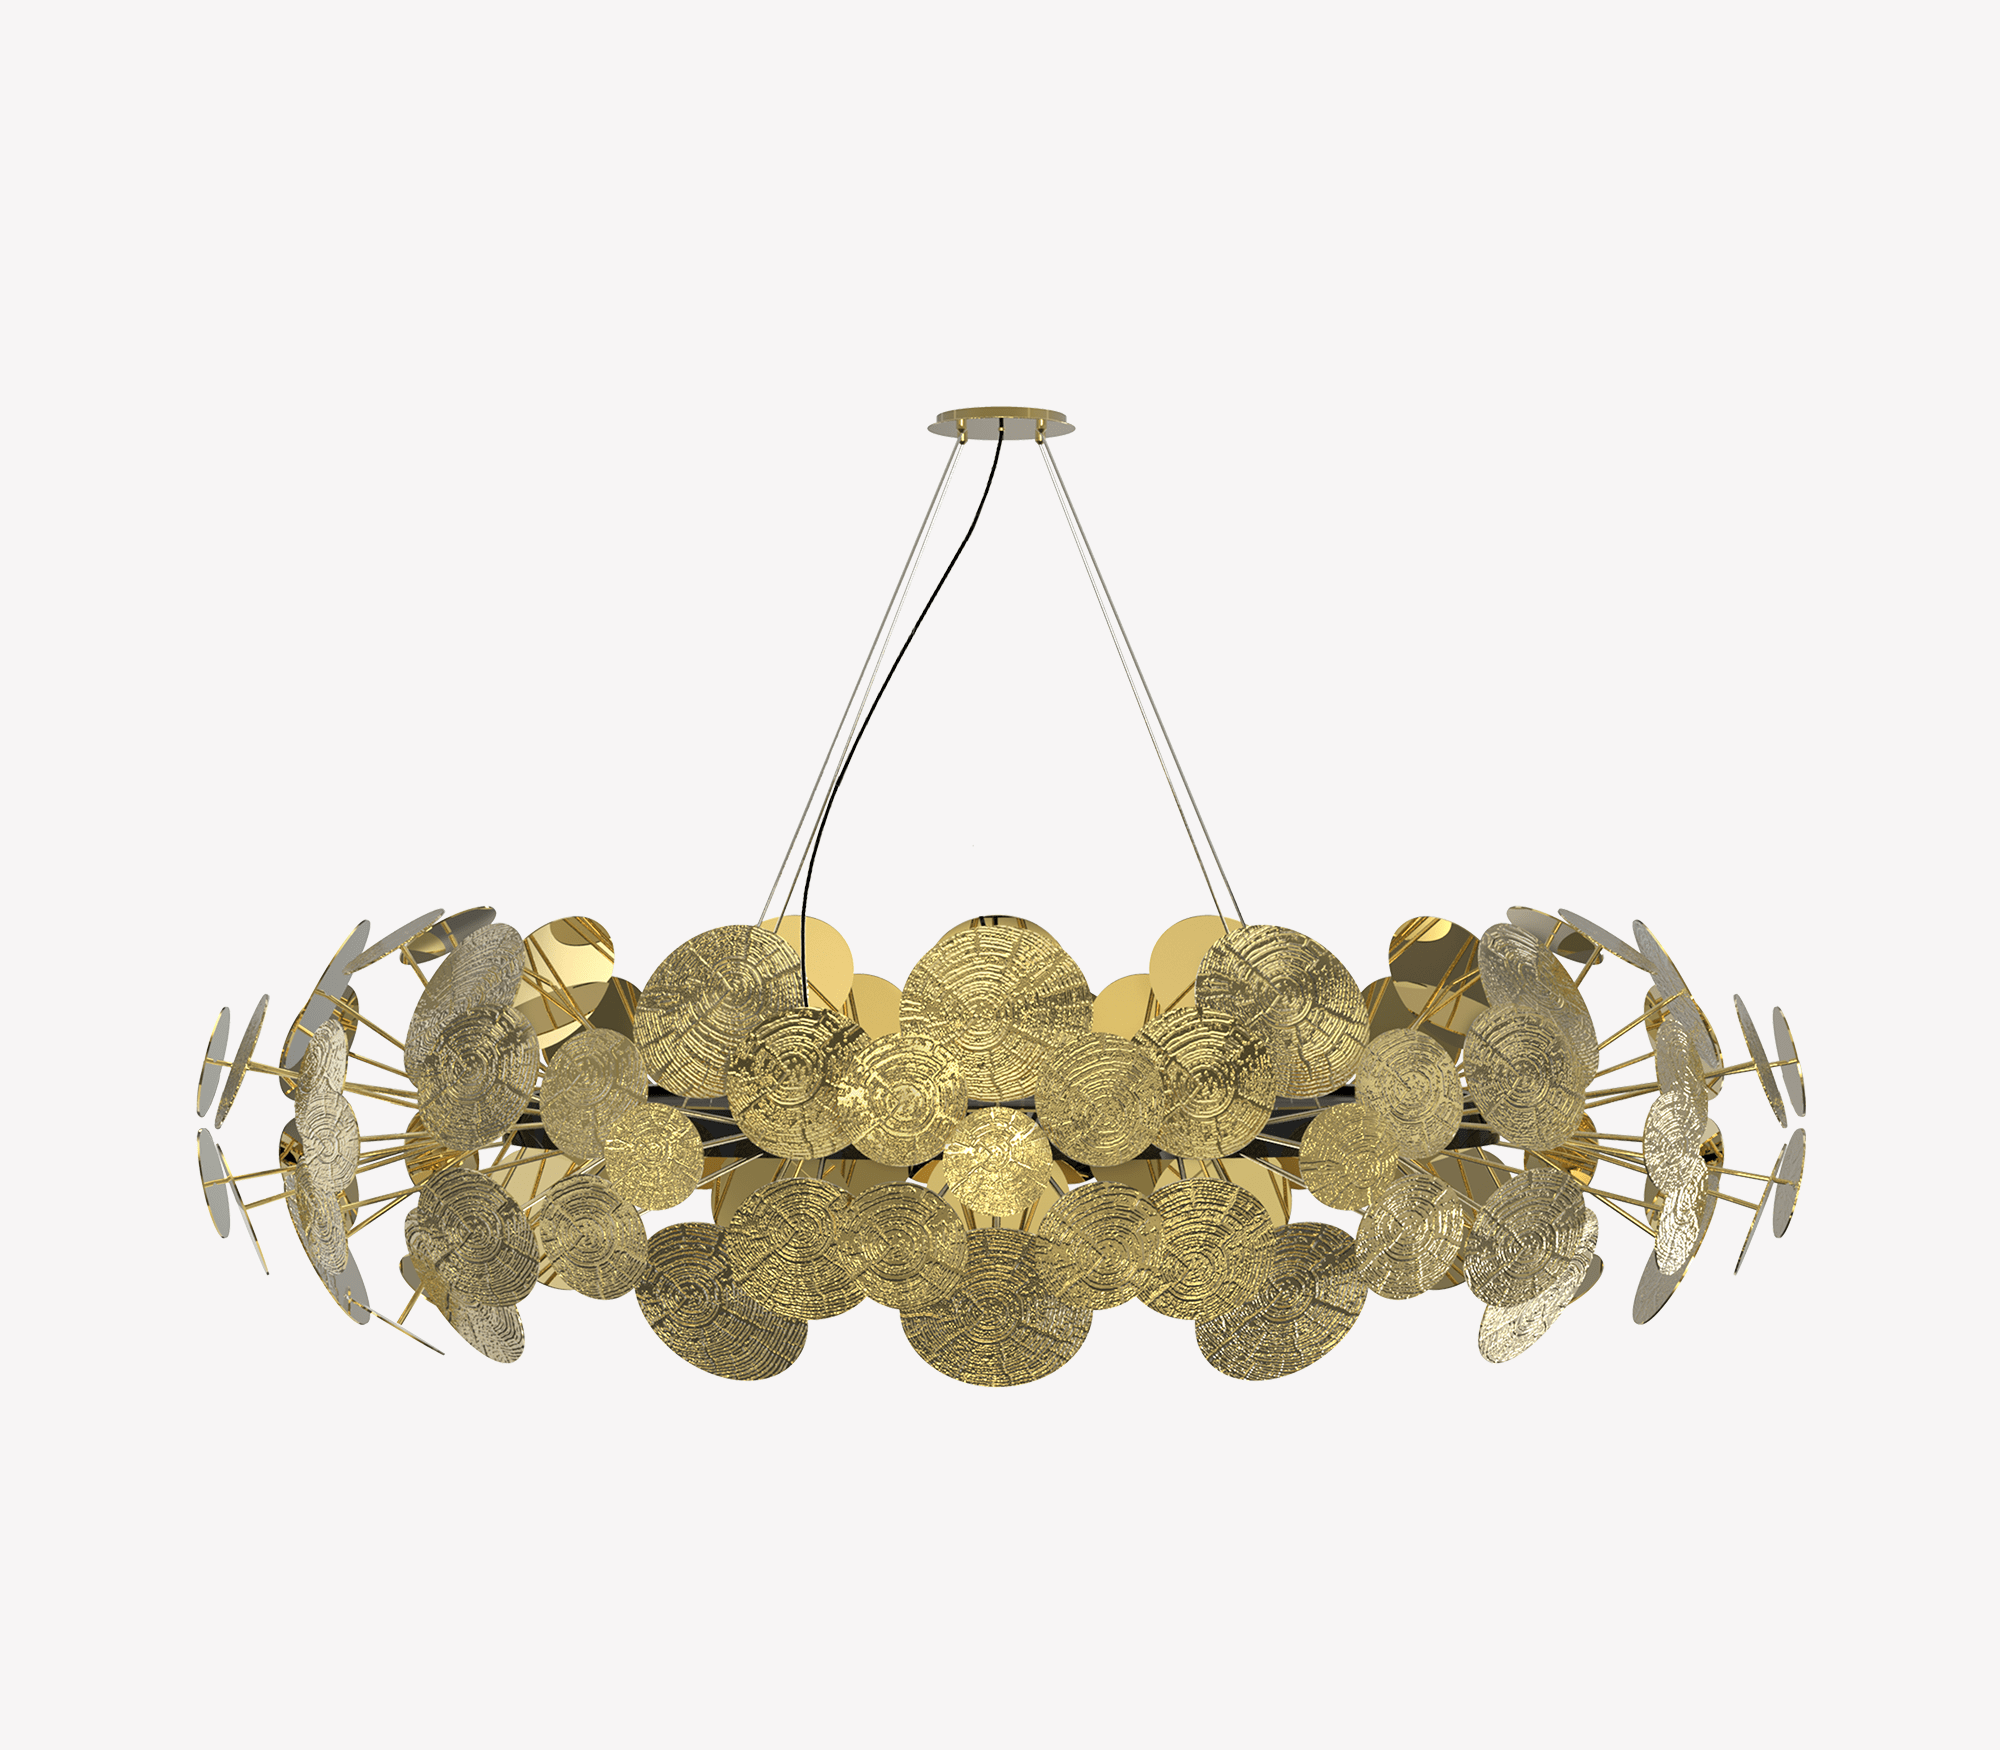 Newton Chandelier by Boca do Lobo